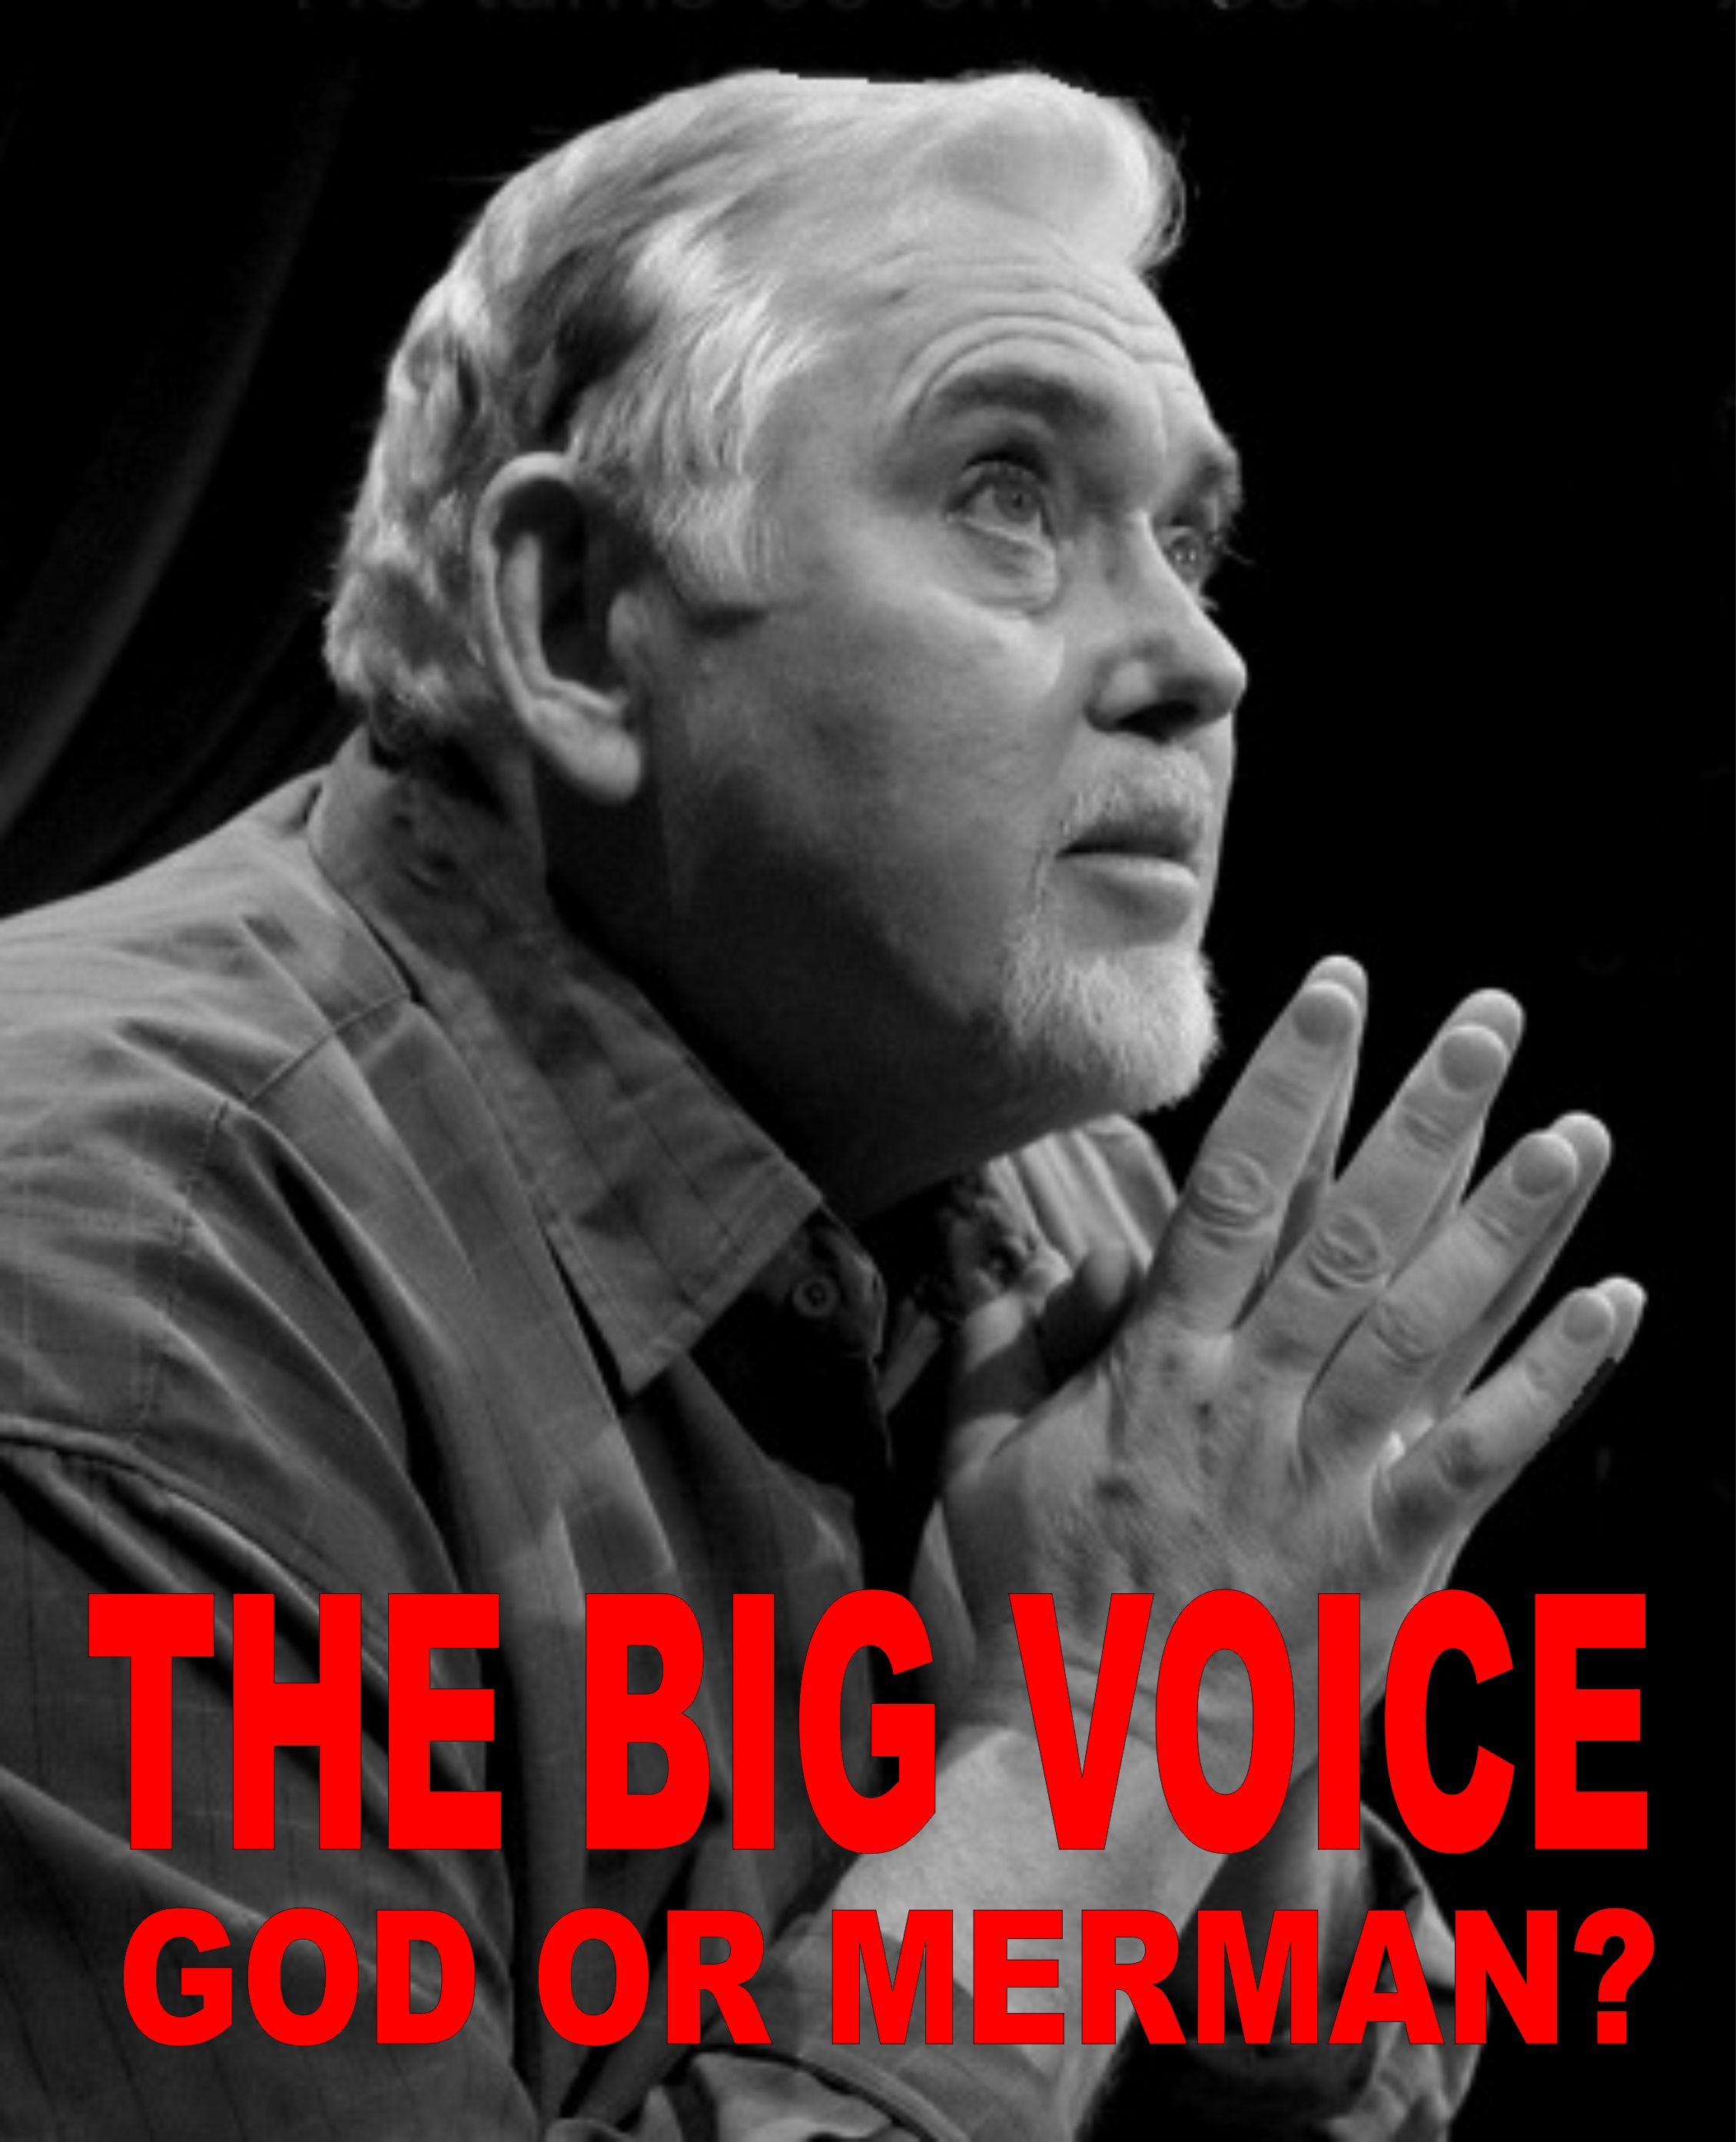 the big voice god or merman